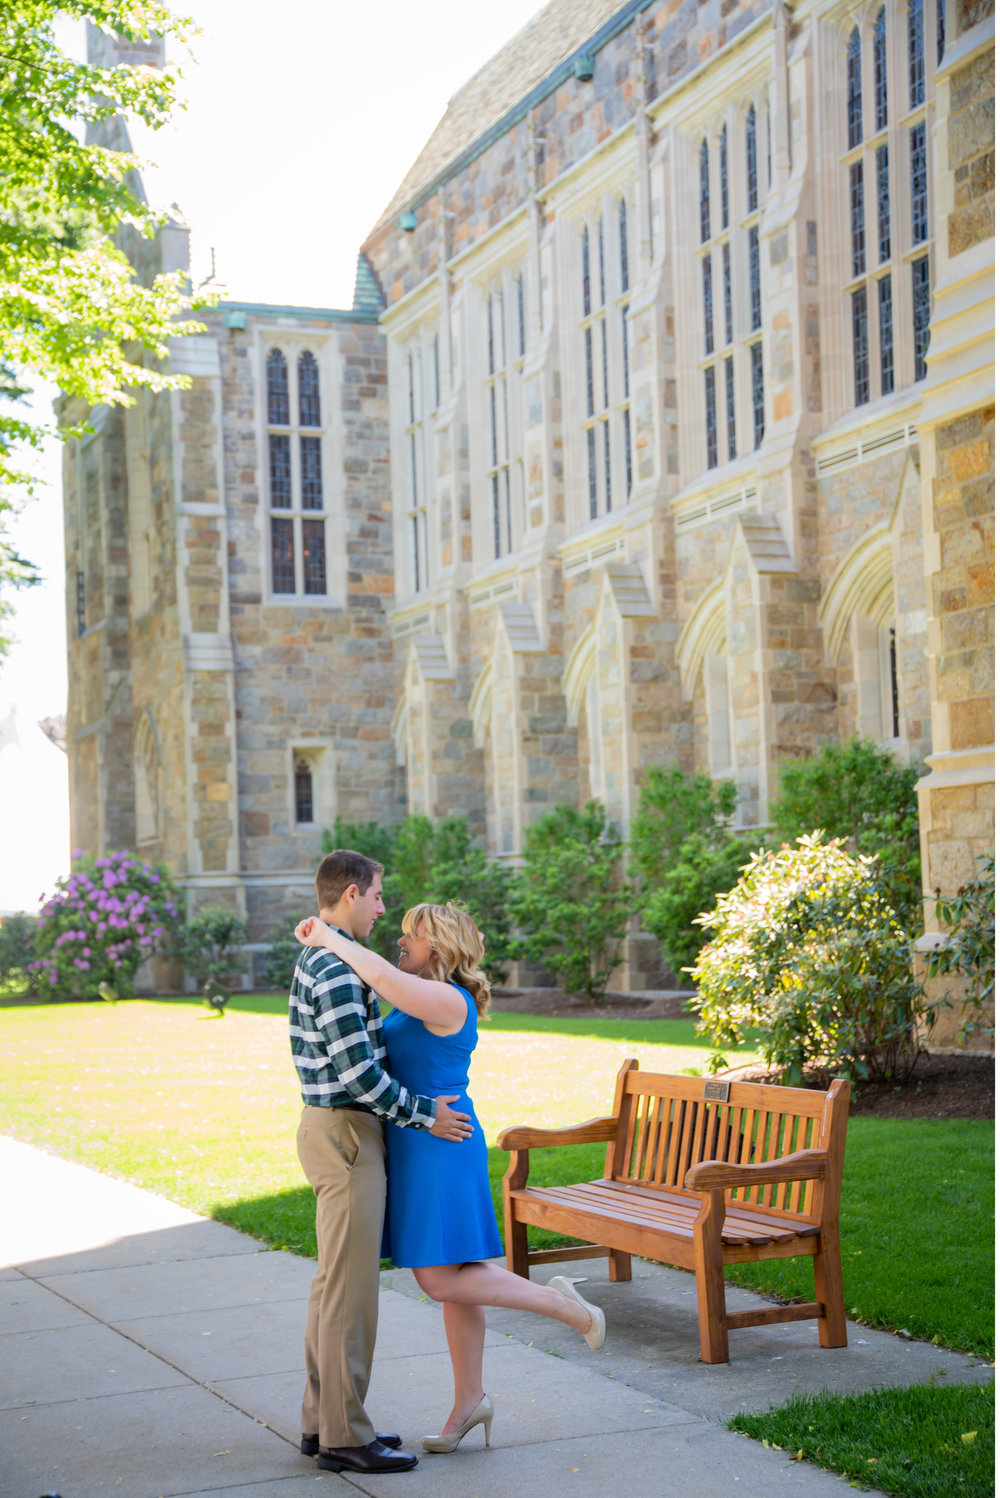 Lea & Greg Engagement session at the Boston College by Unveiled-Weddings.com